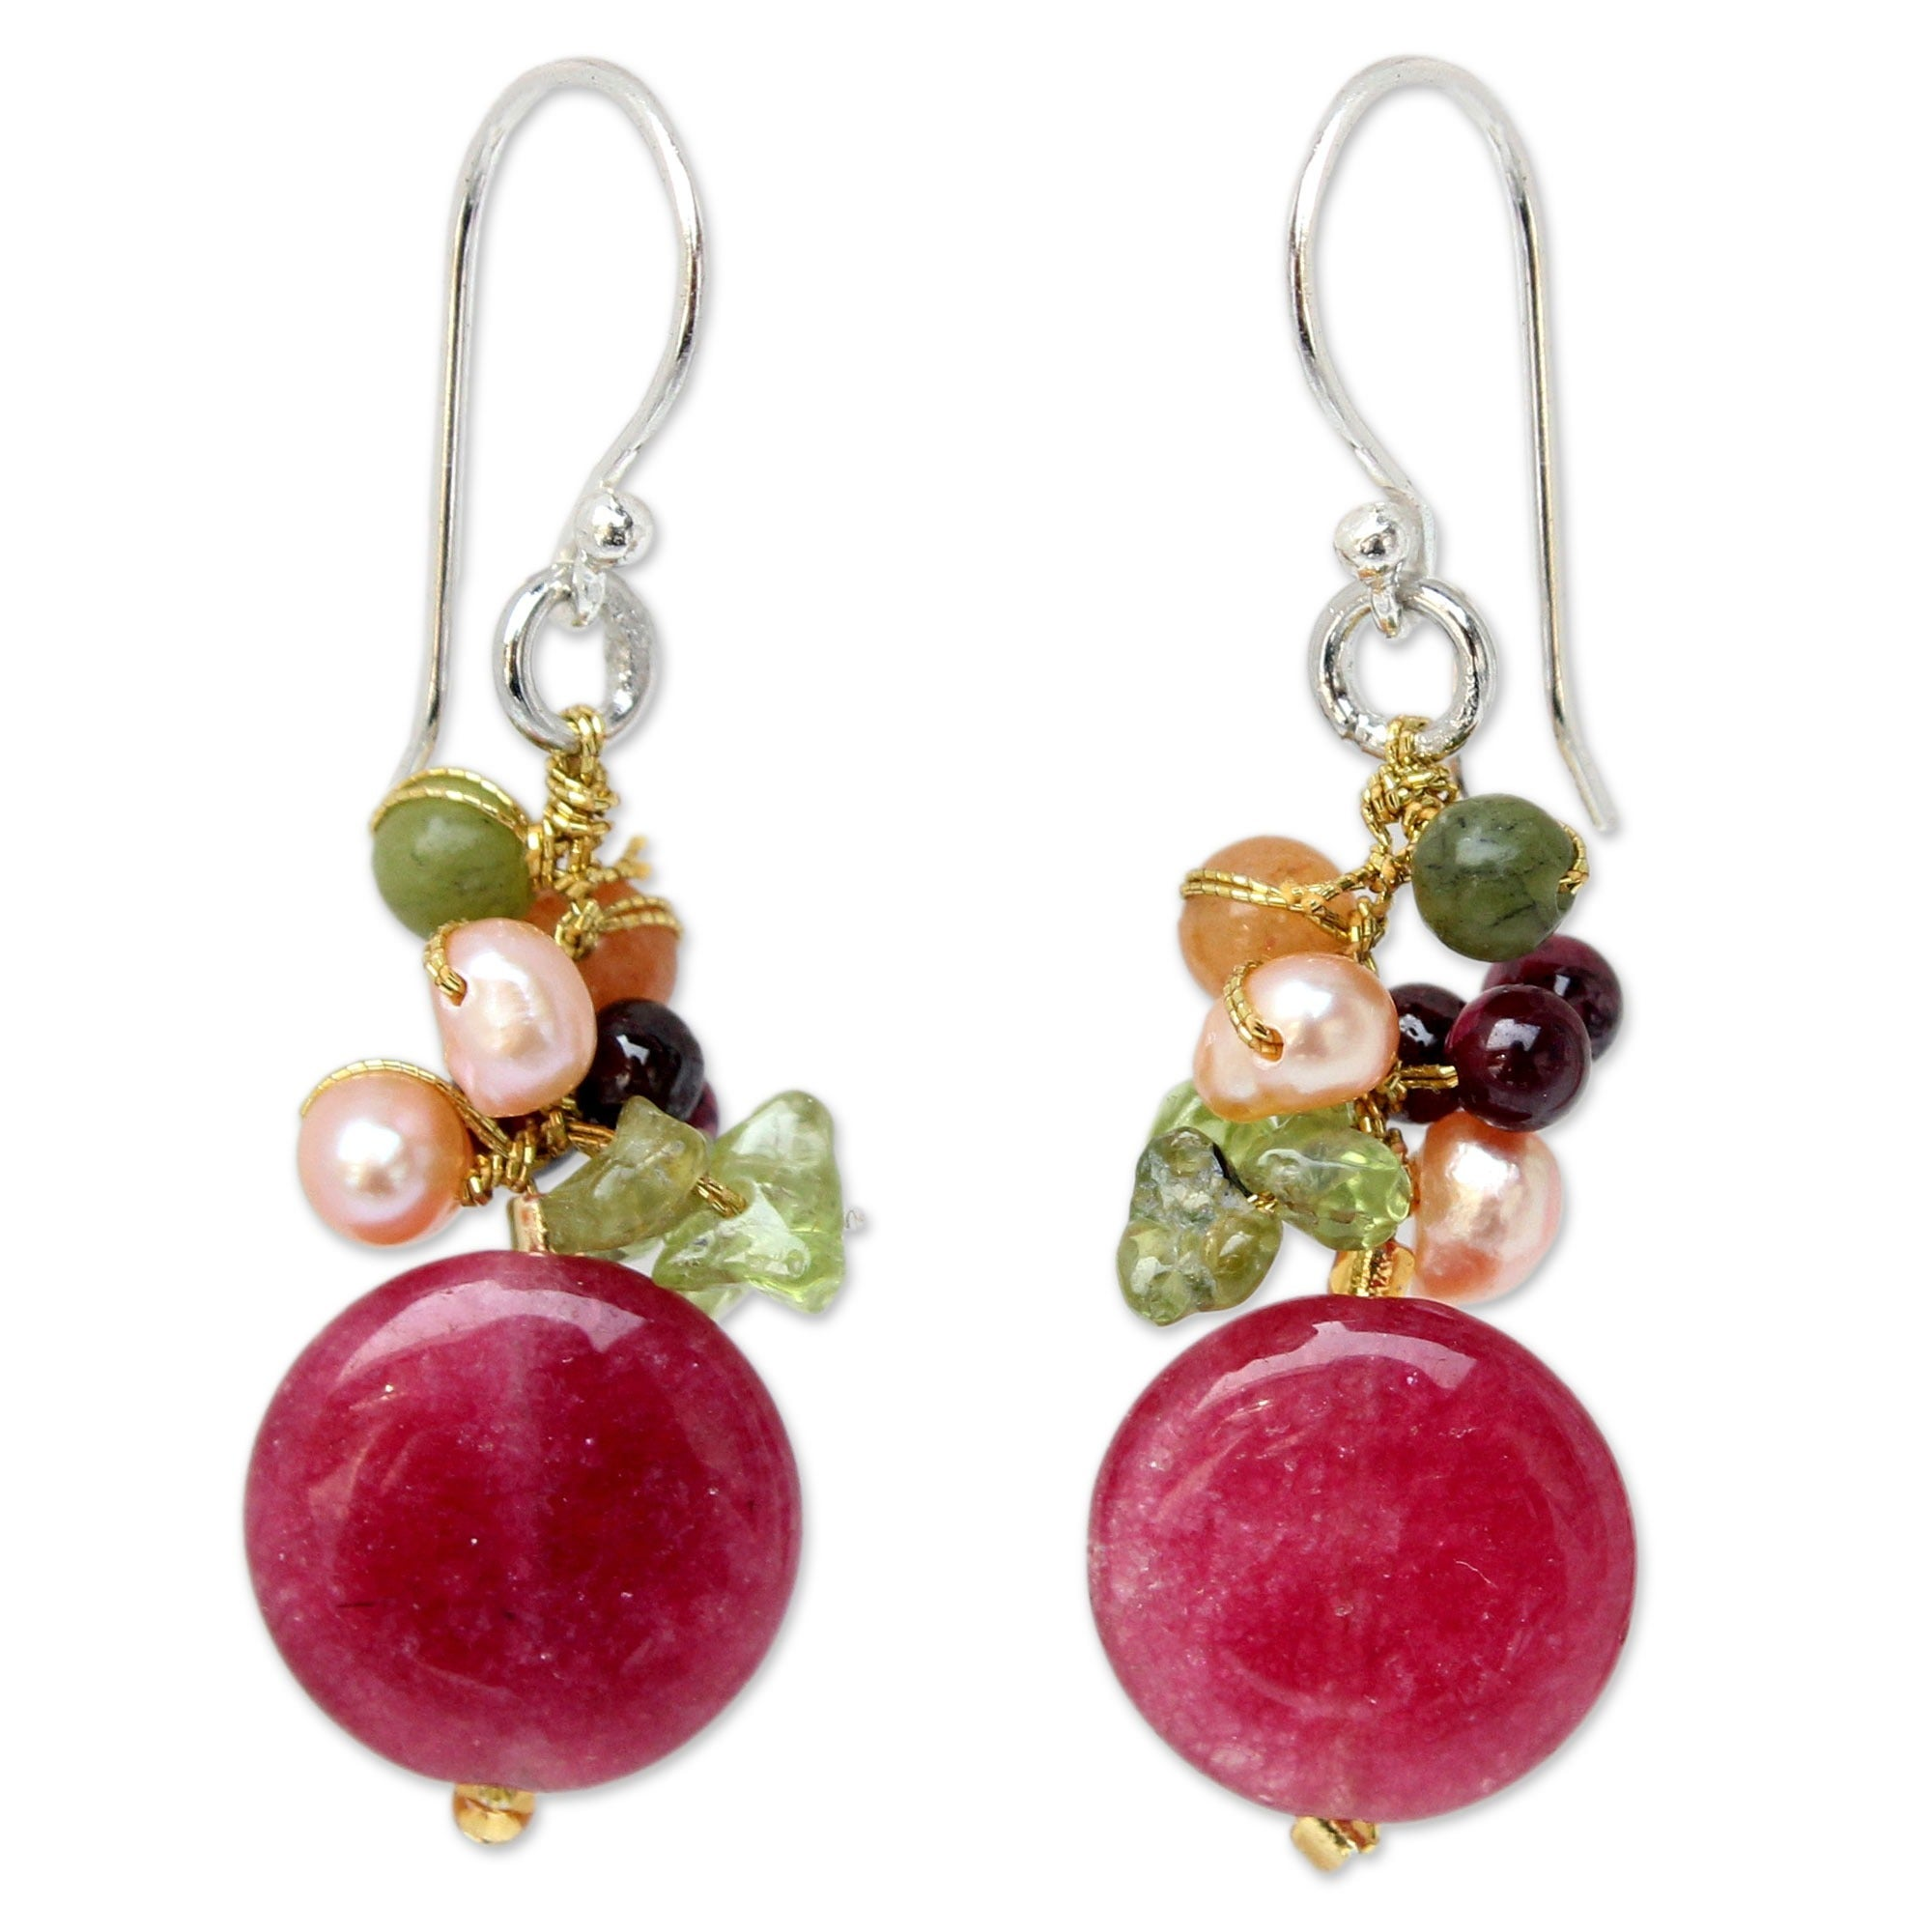 j pasquale org multi multicolor earrings at id jewelry gemstone more gold bruni